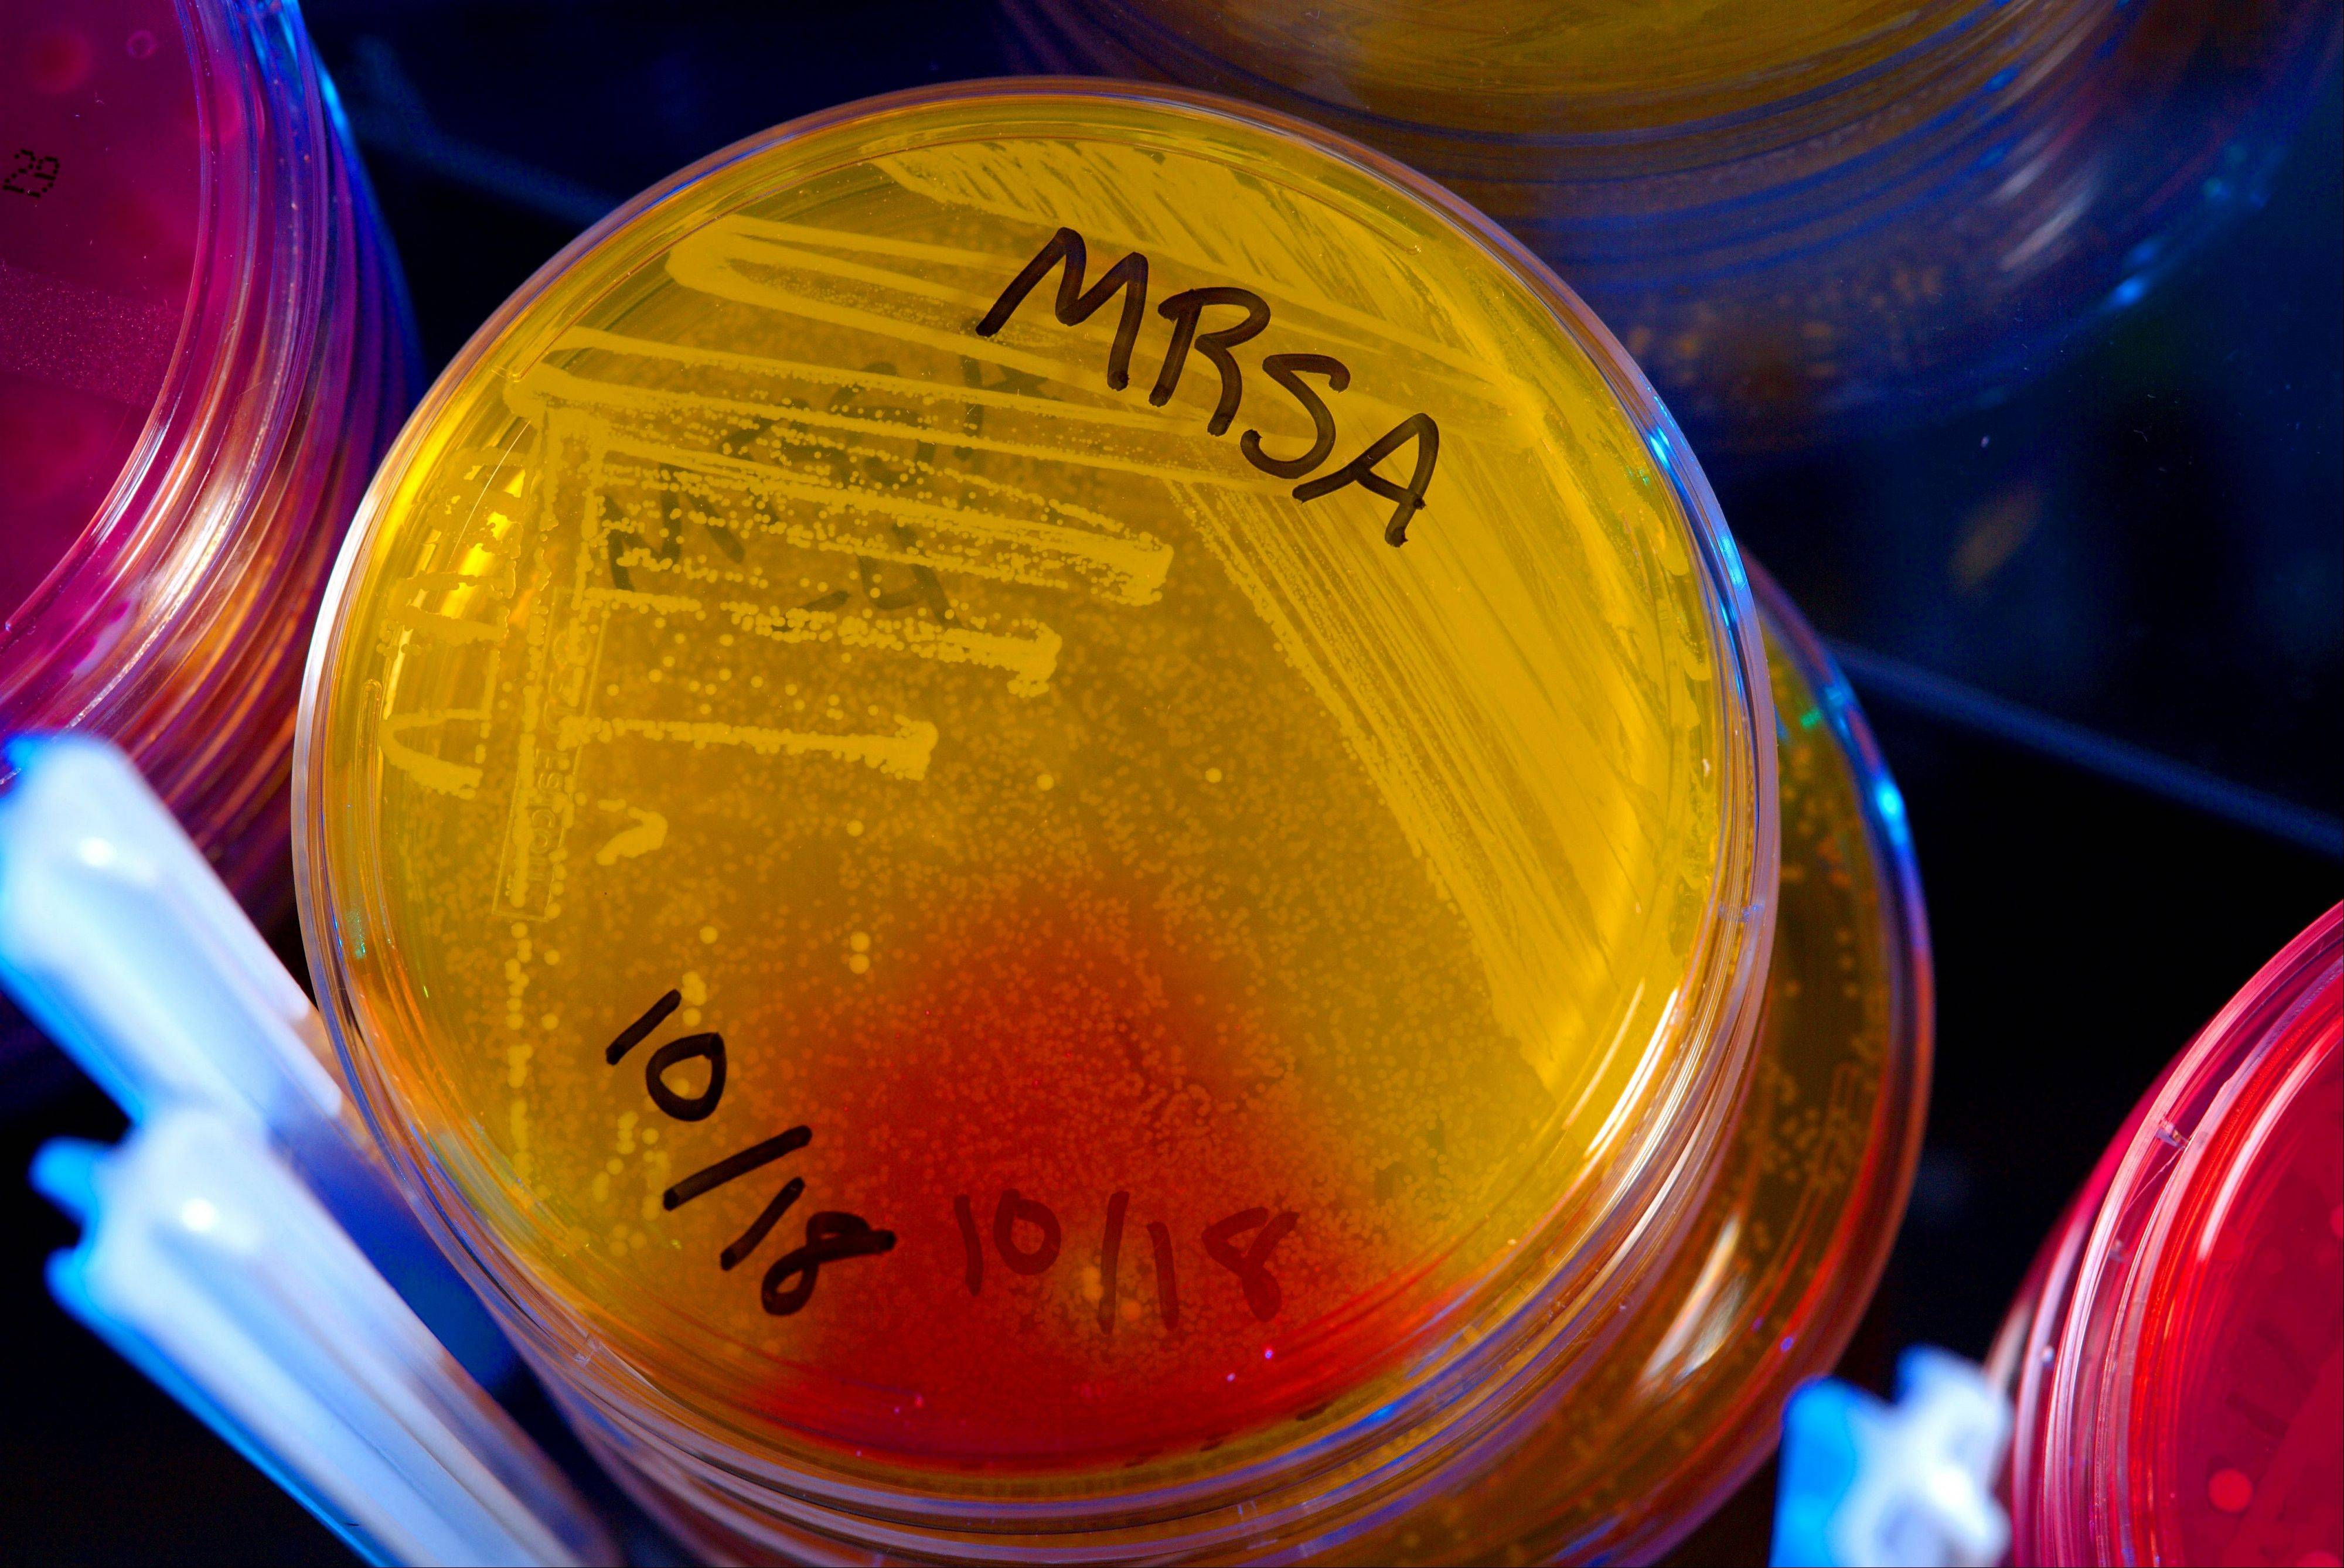 Plates of Methicillin-Resistant Staphylococcus Aureus (MRSA) in CDC�s healthcare-associated infections laboratory.